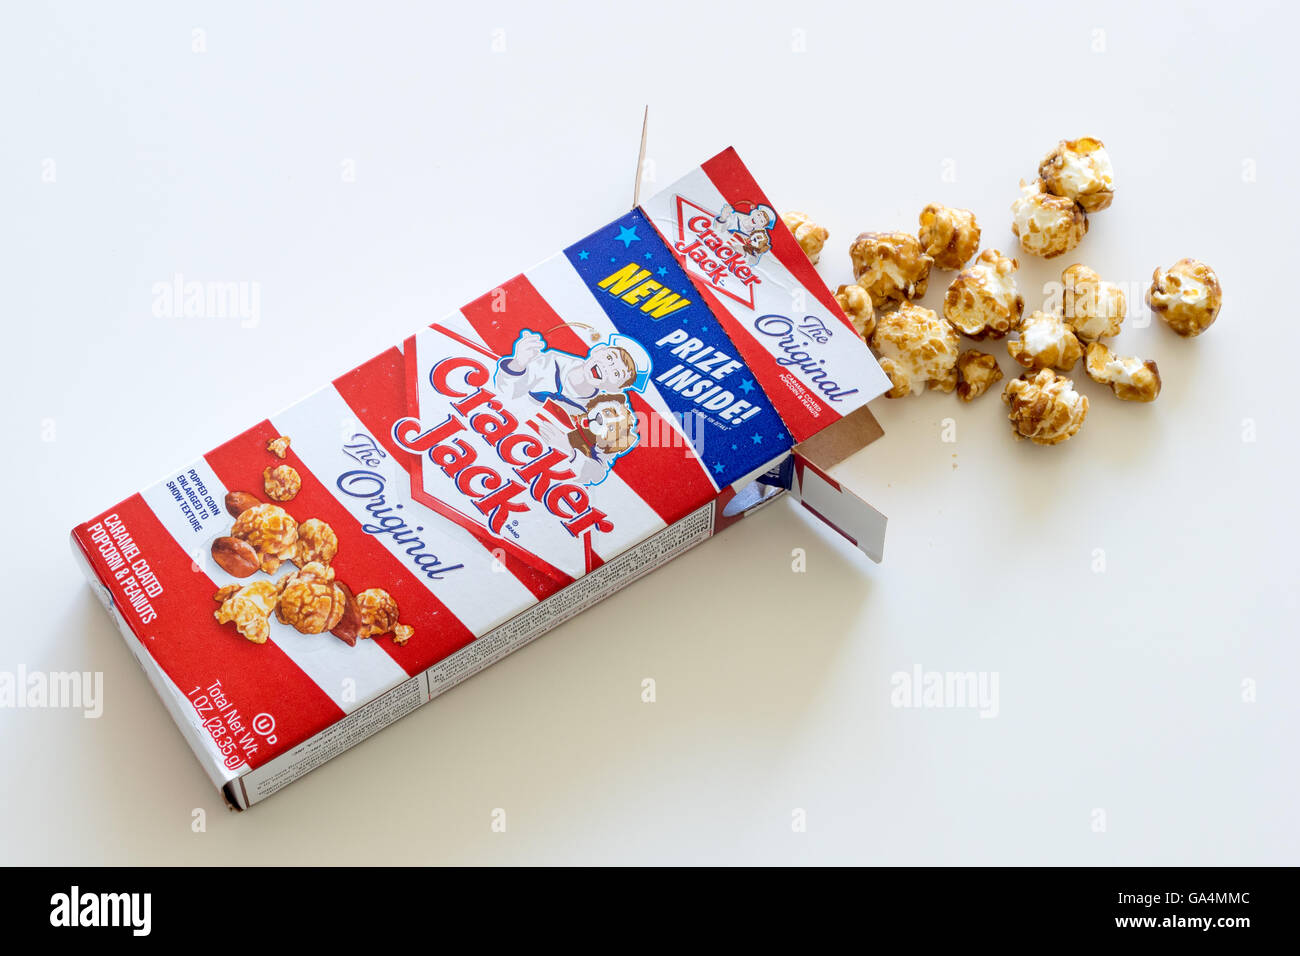 A box of Cracker Jack, an American snack consisting of molasses-flavoured caramel-coated popcorn and peanuts. Stock Photo